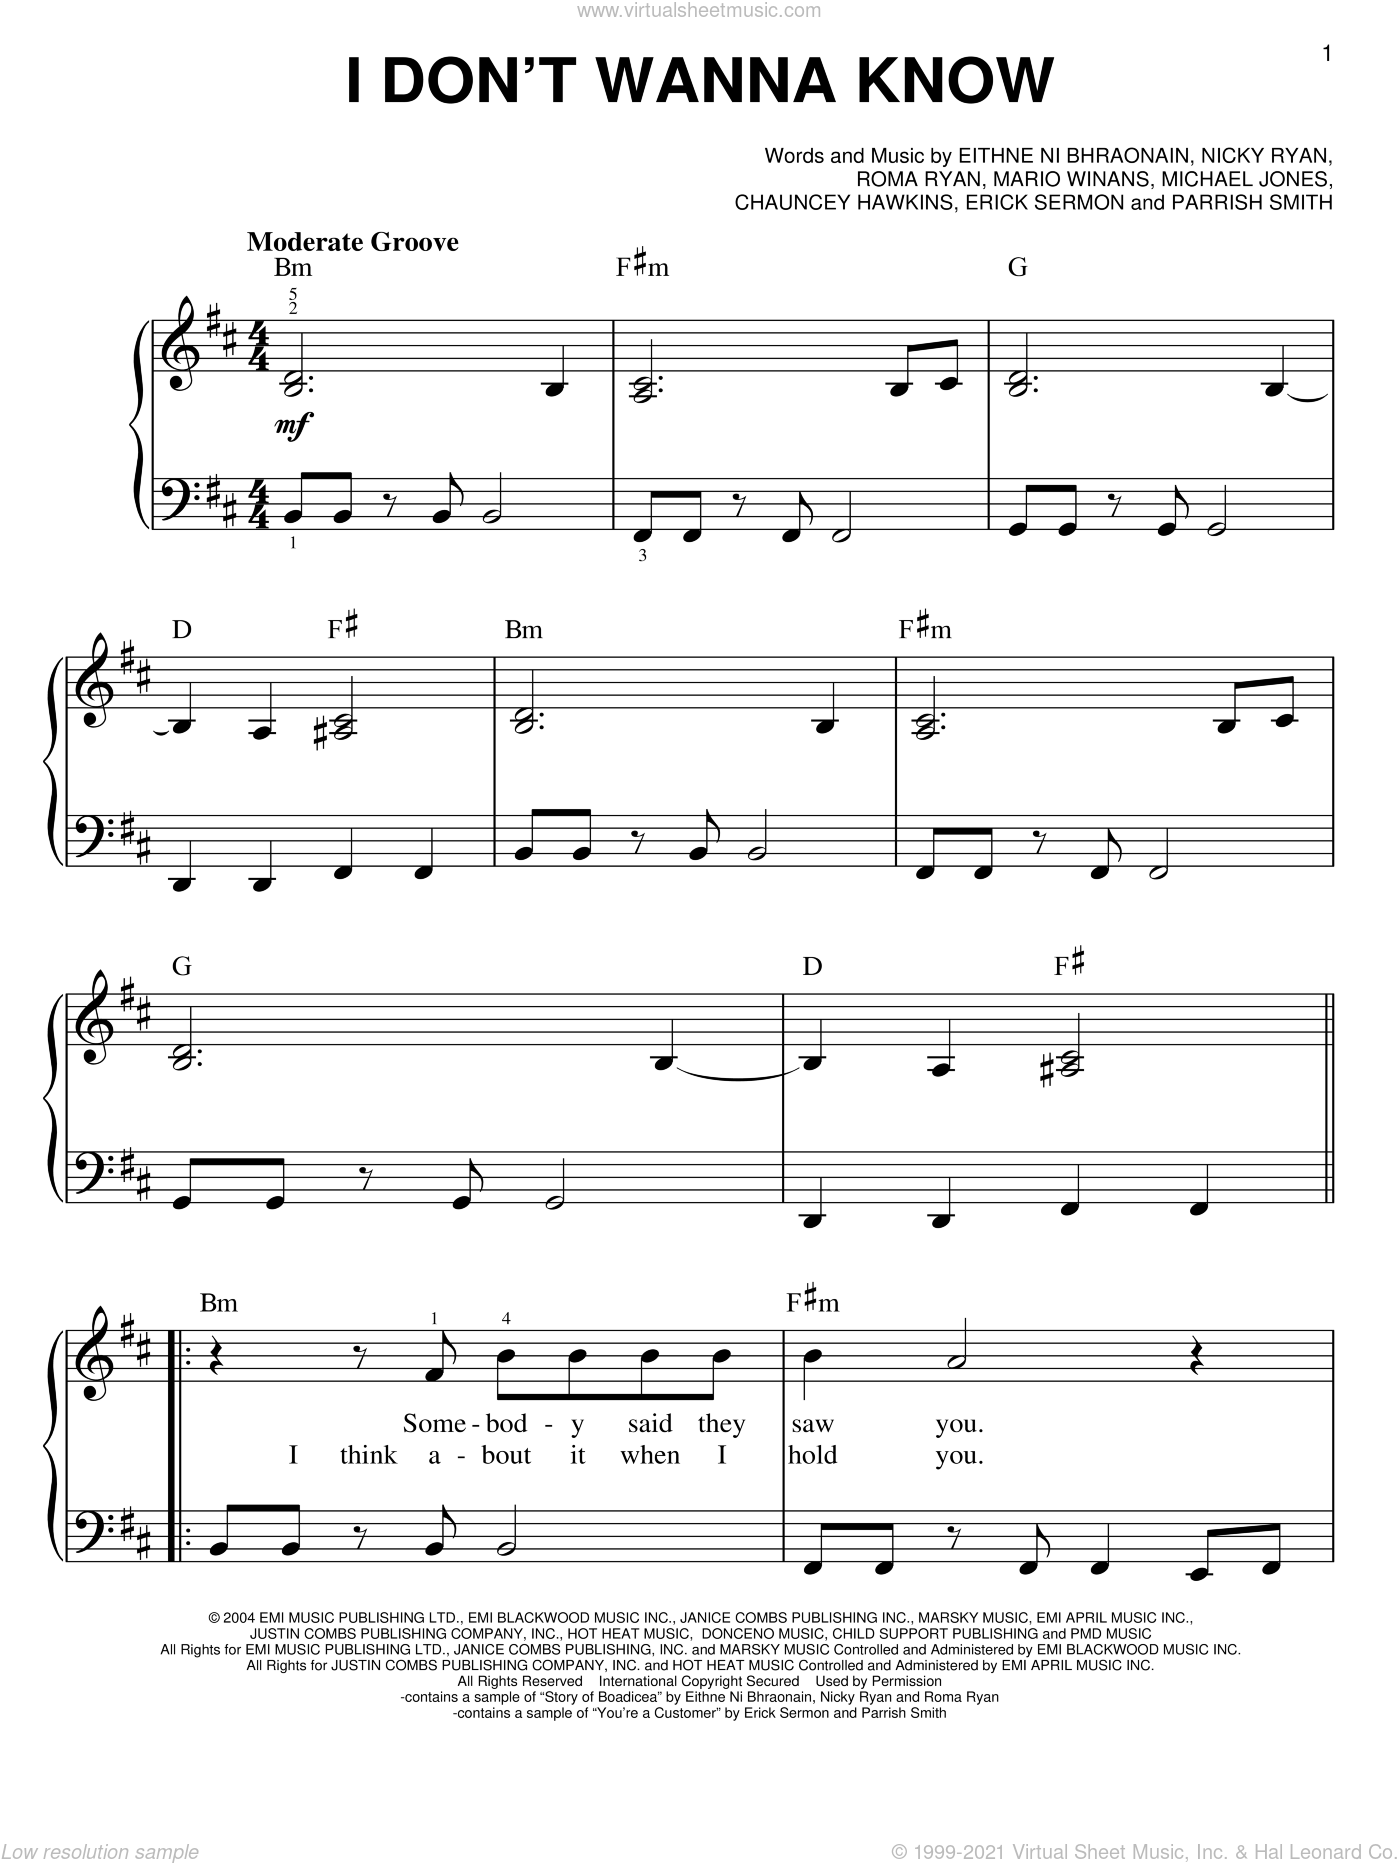 I Don't Wanna Know sheet music for piano solo (chords) by Roma Ryan